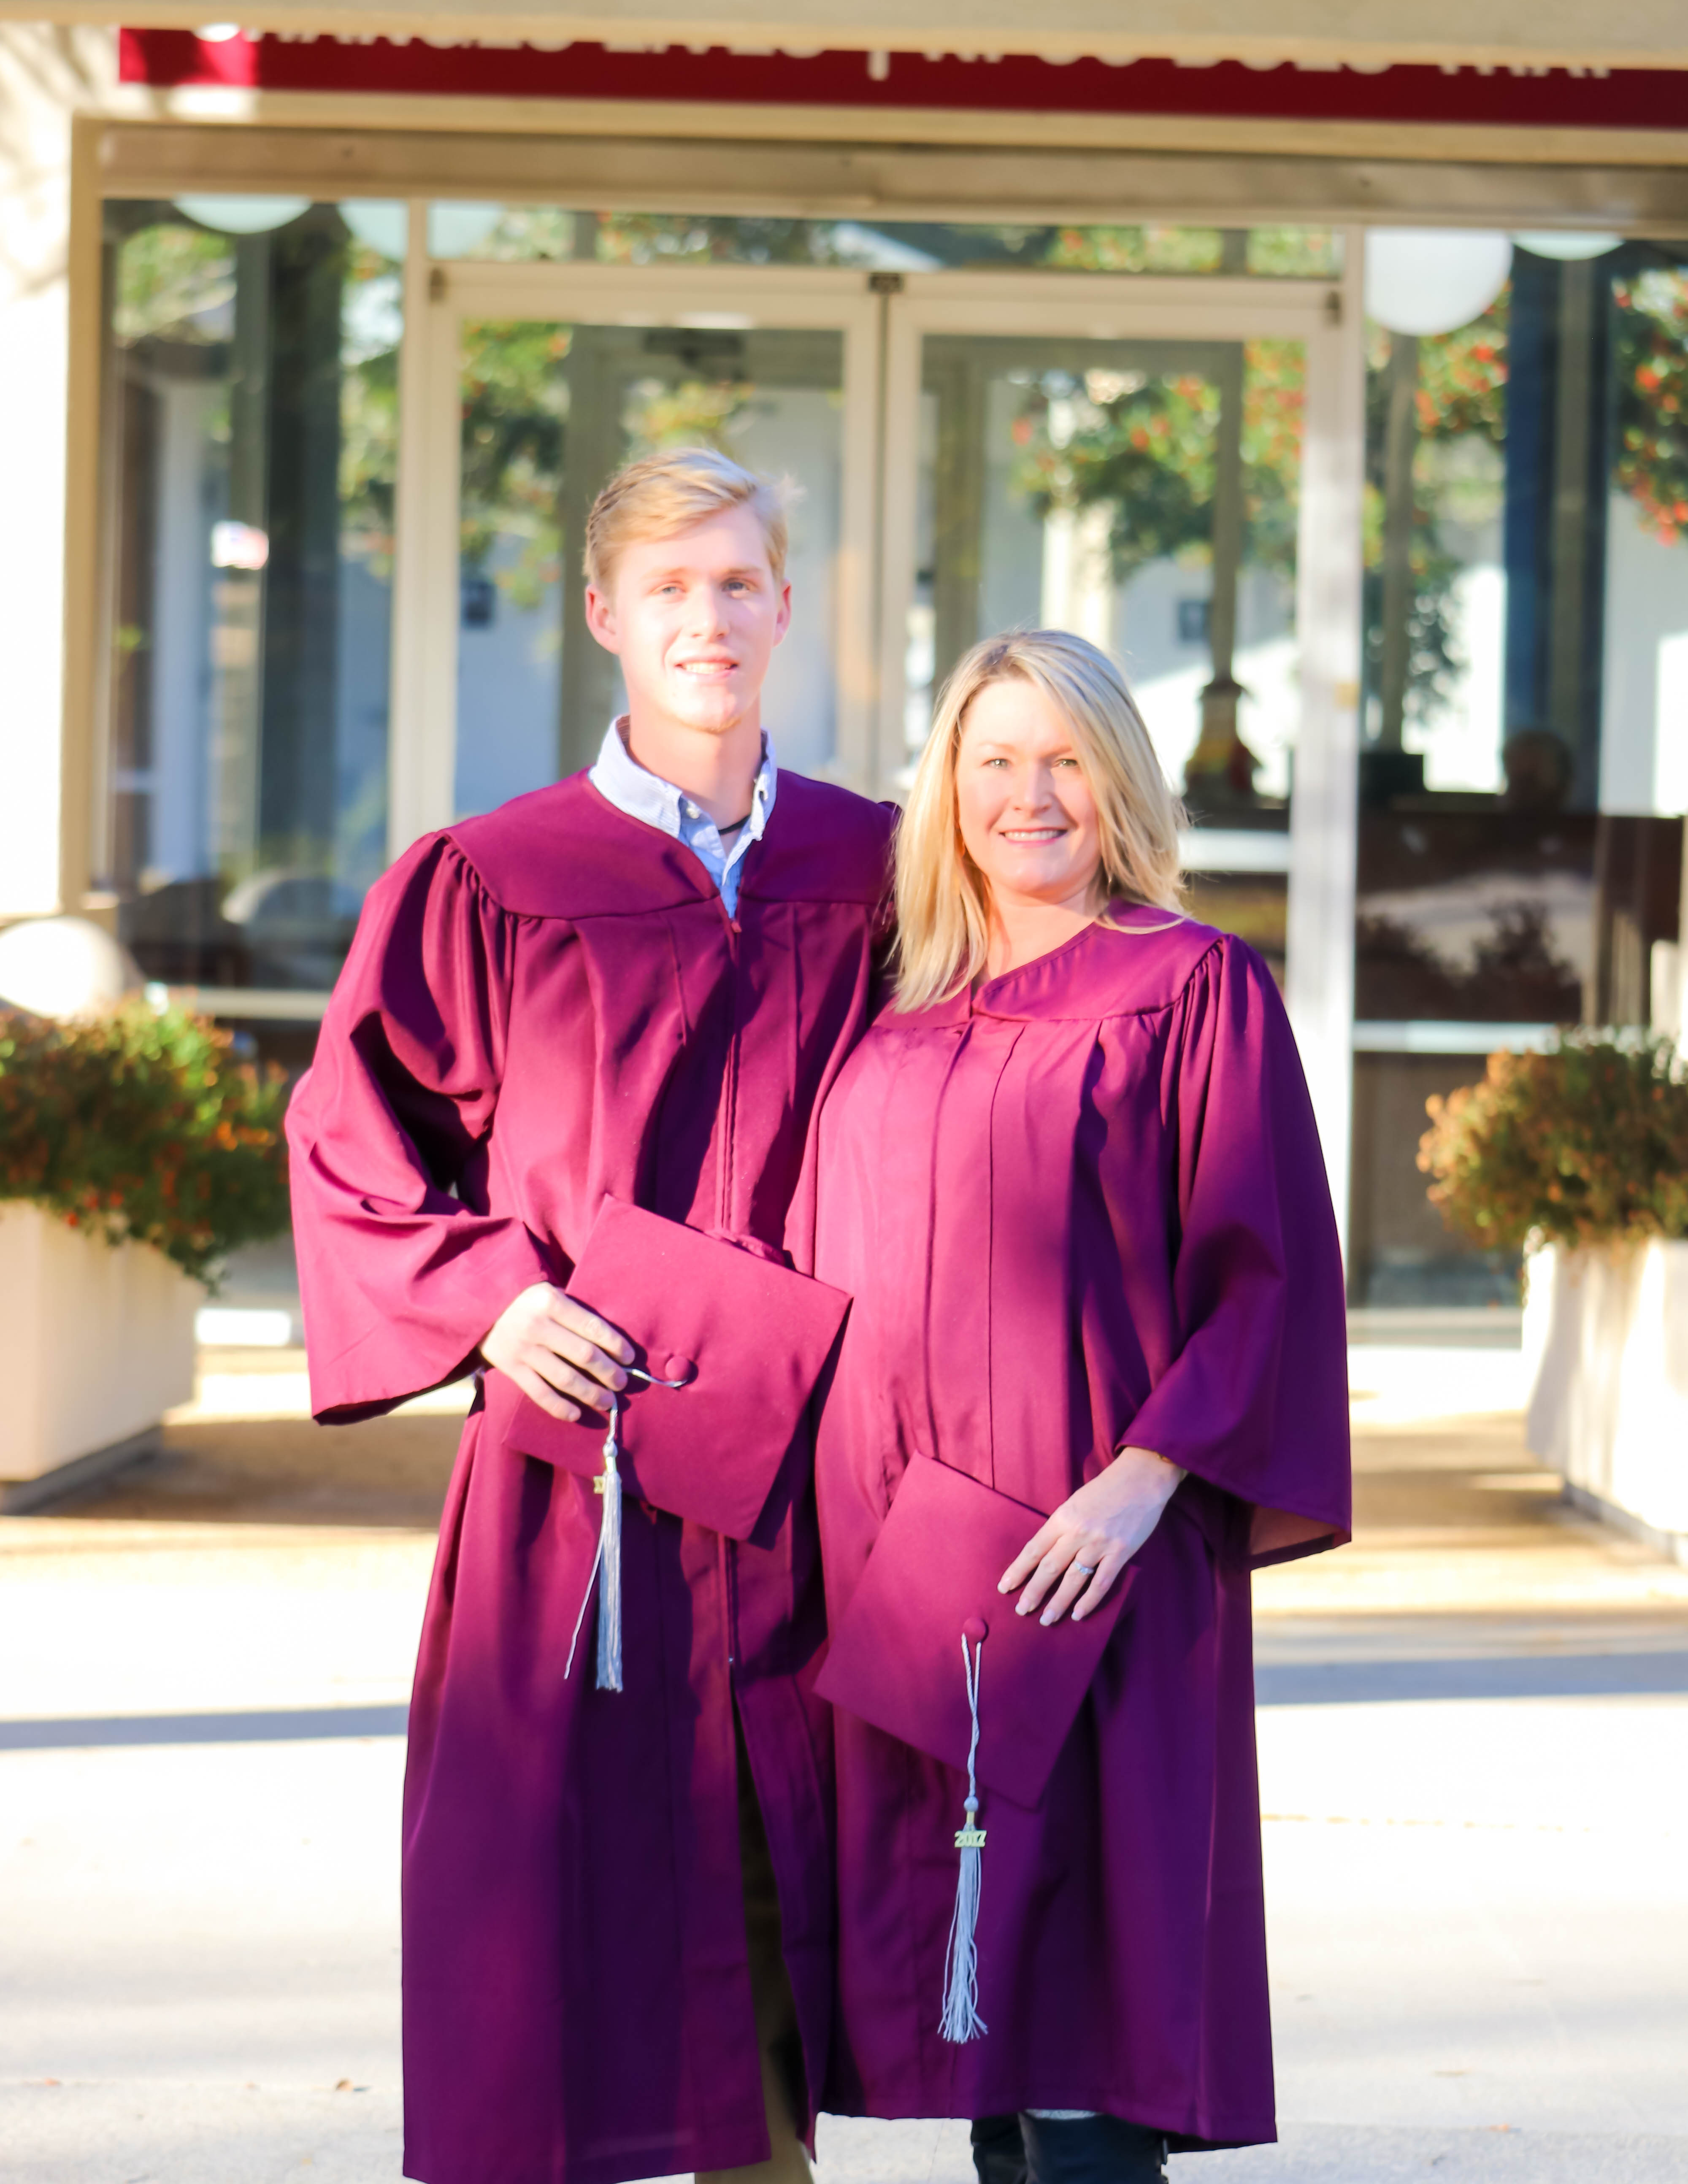 Gabe Miller and Angela Eastabrooks standing infront of North Florida Community College before graduation ceremony